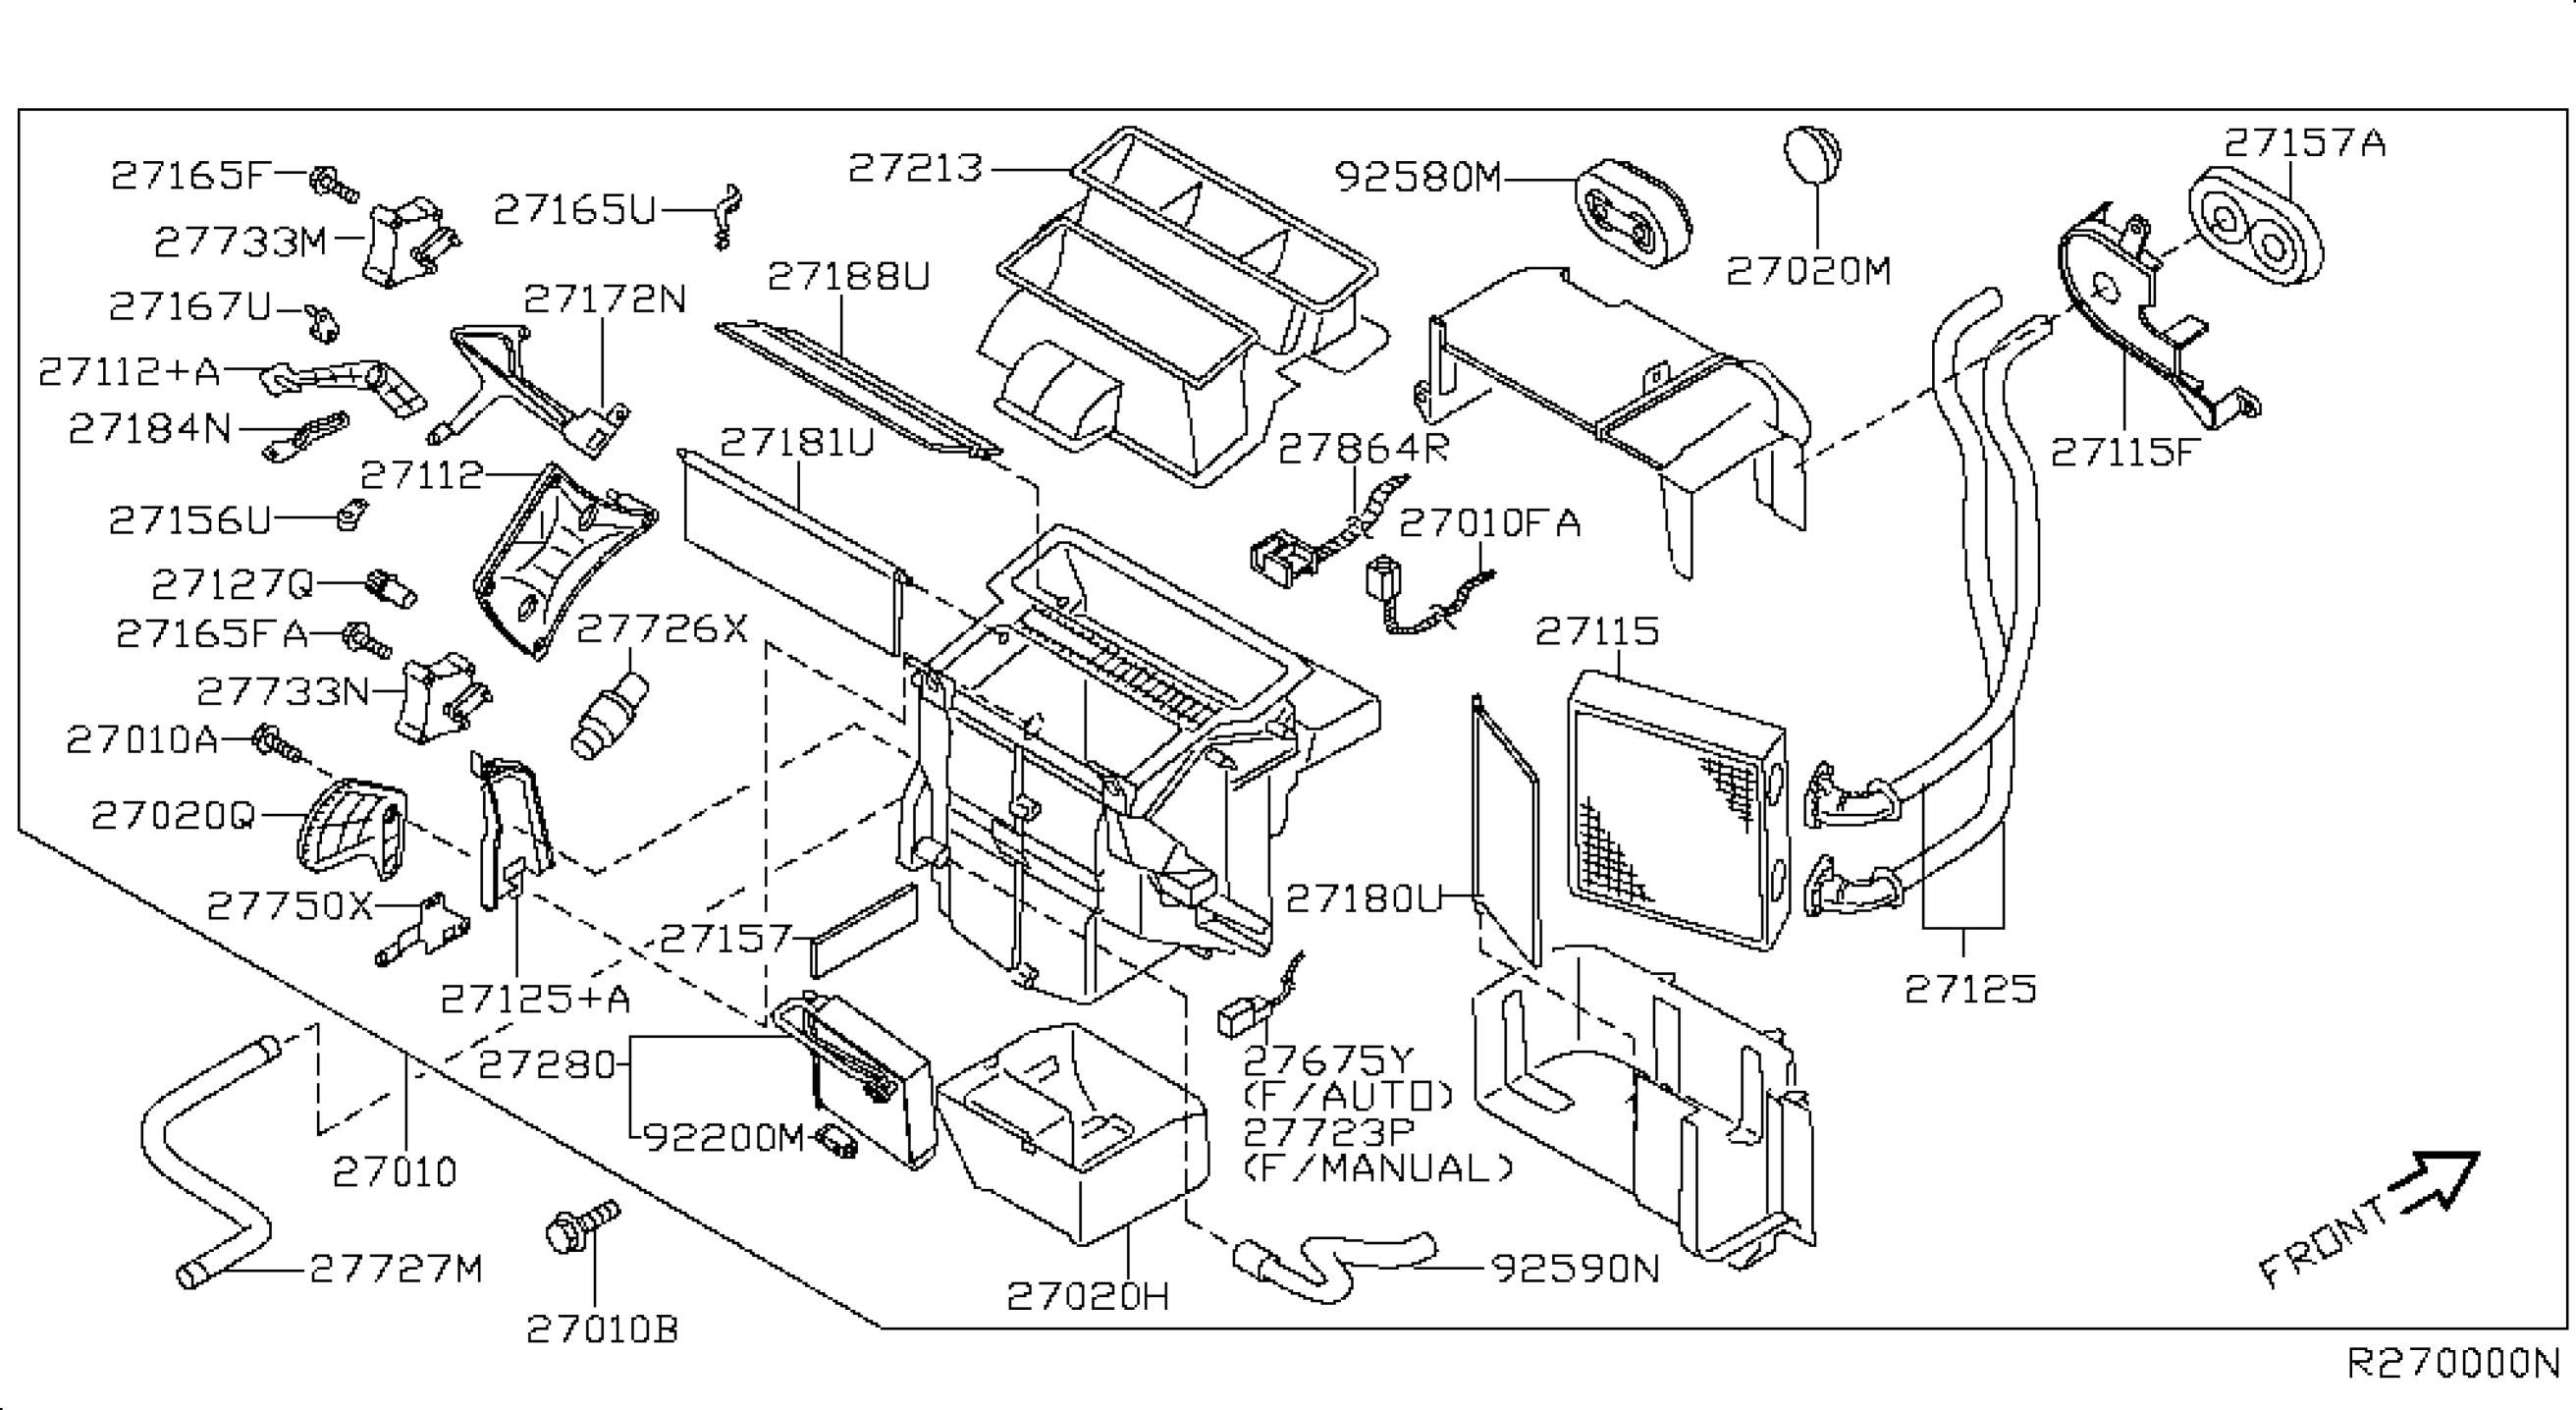 Nissan Sentra 2008 Parts Diagram